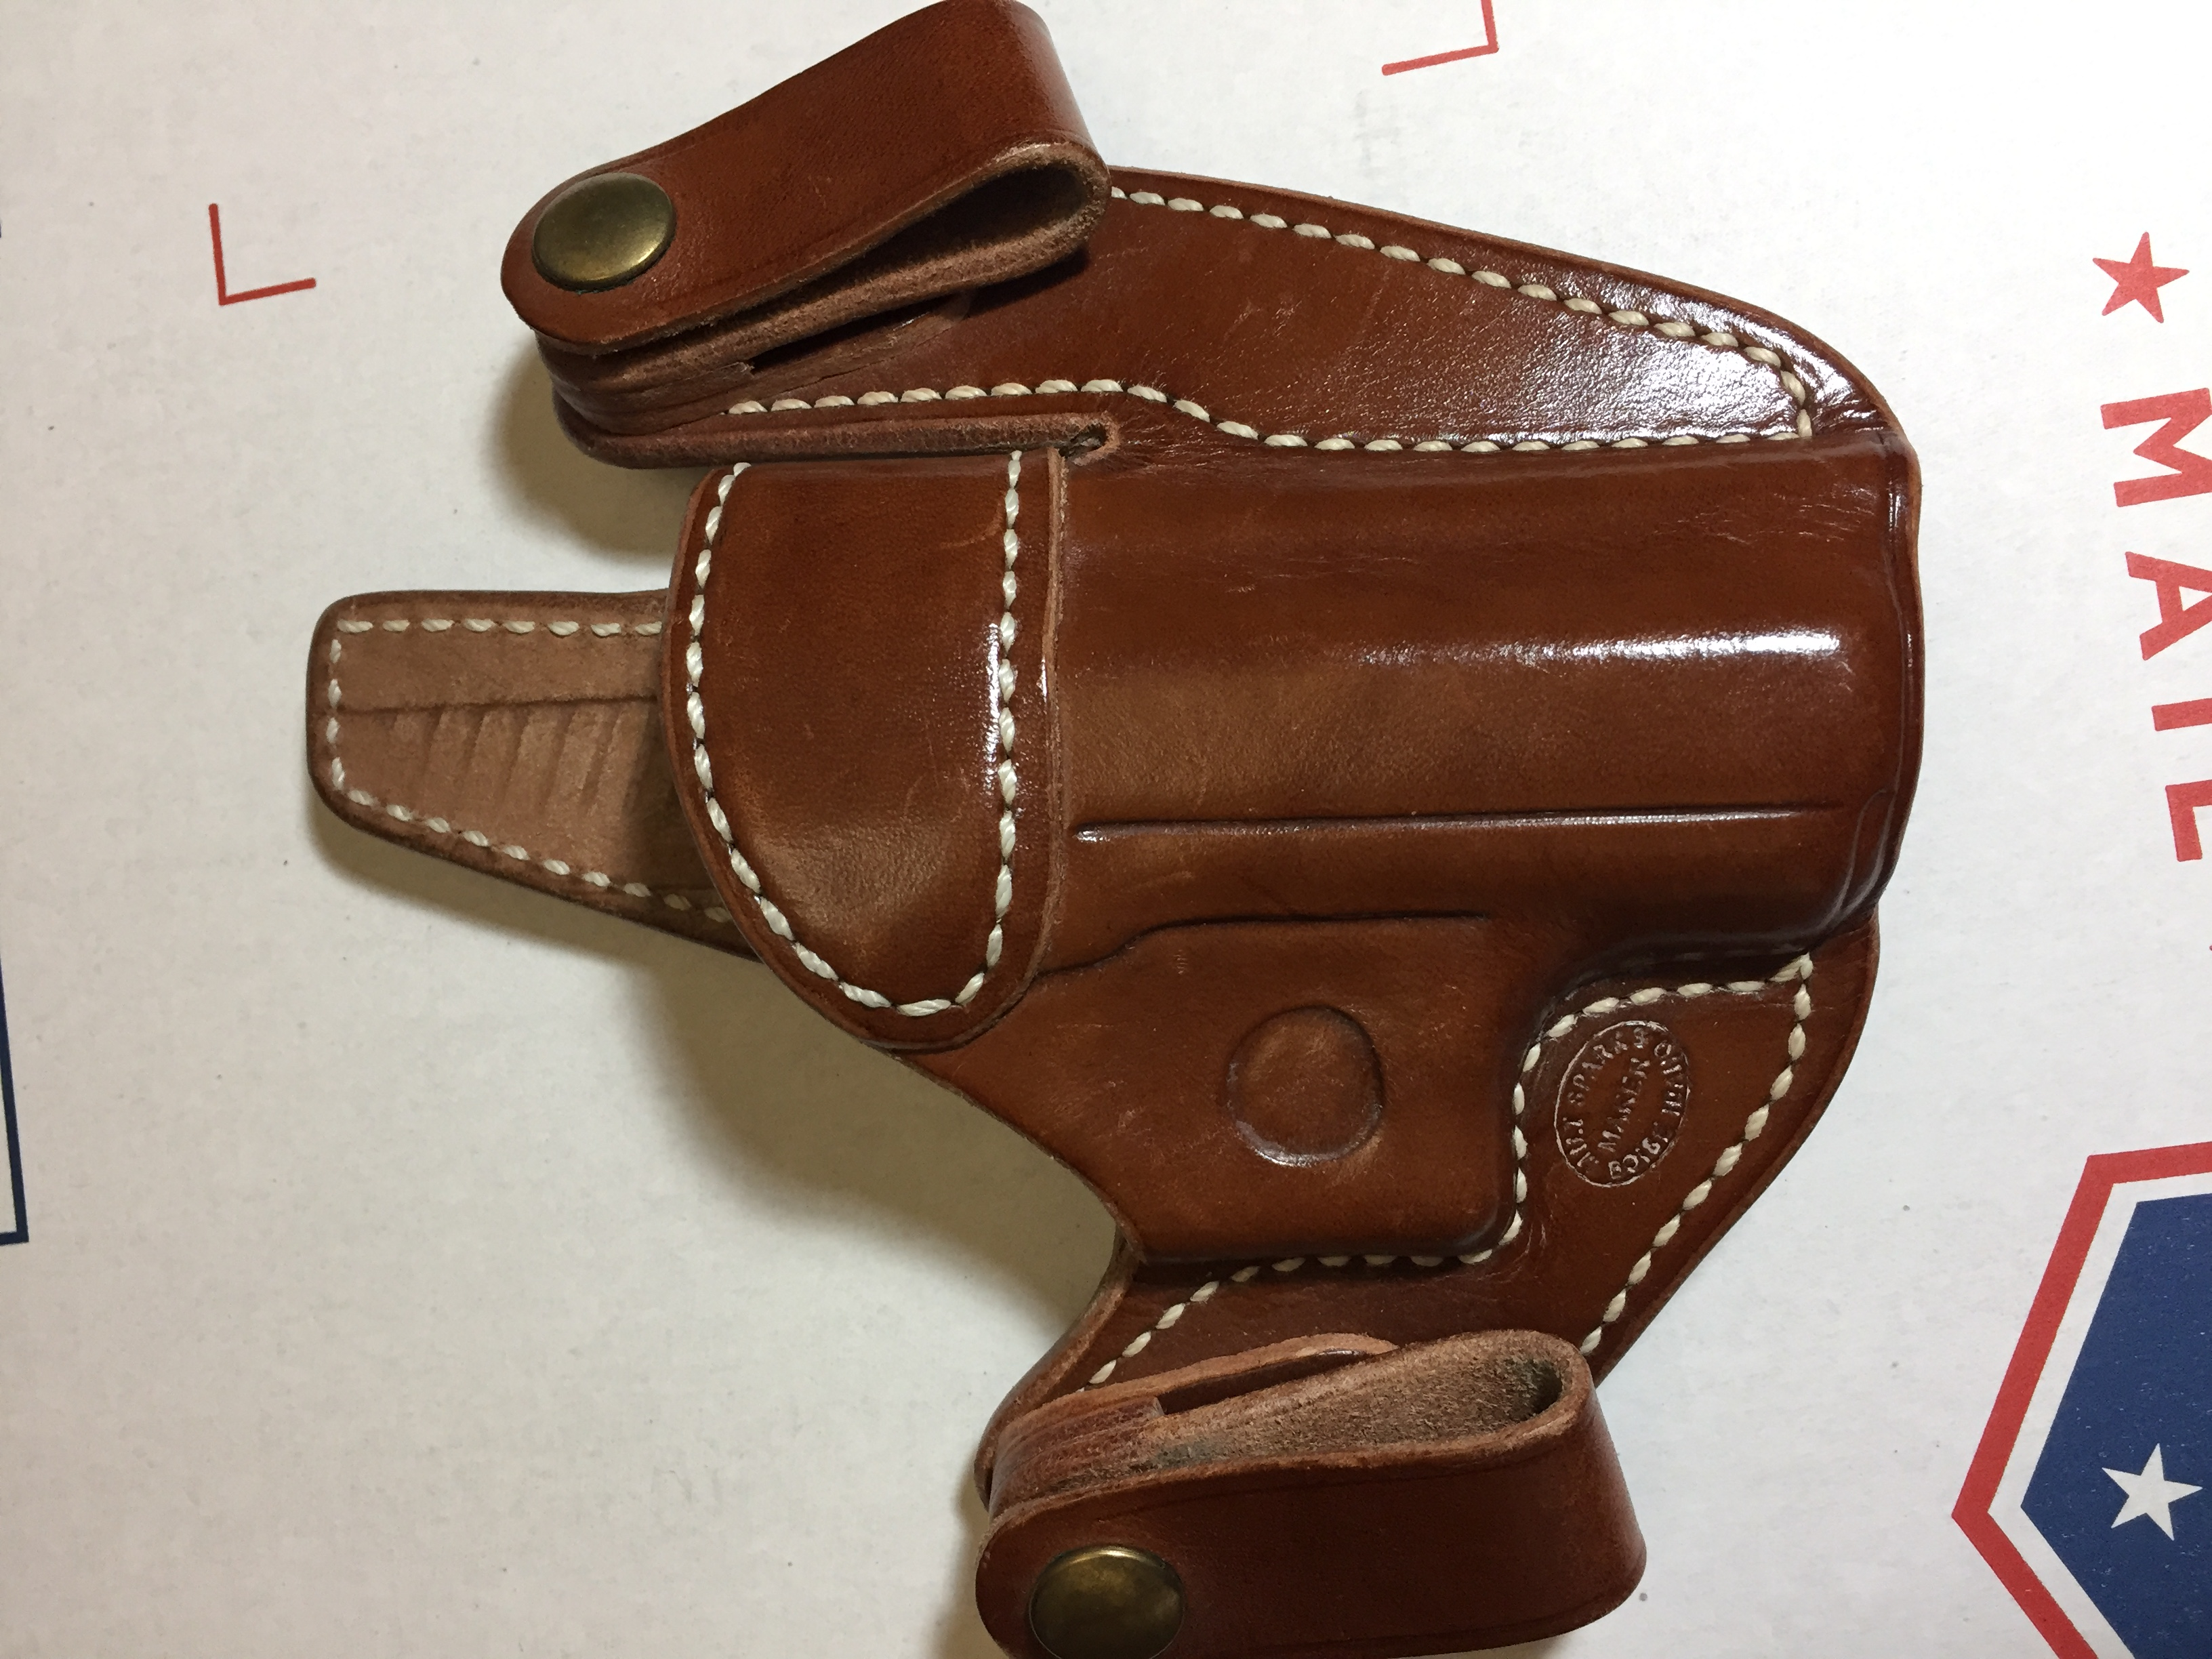 WTS: Several Milt Sparks holsters and a belt-img_0369.jpg